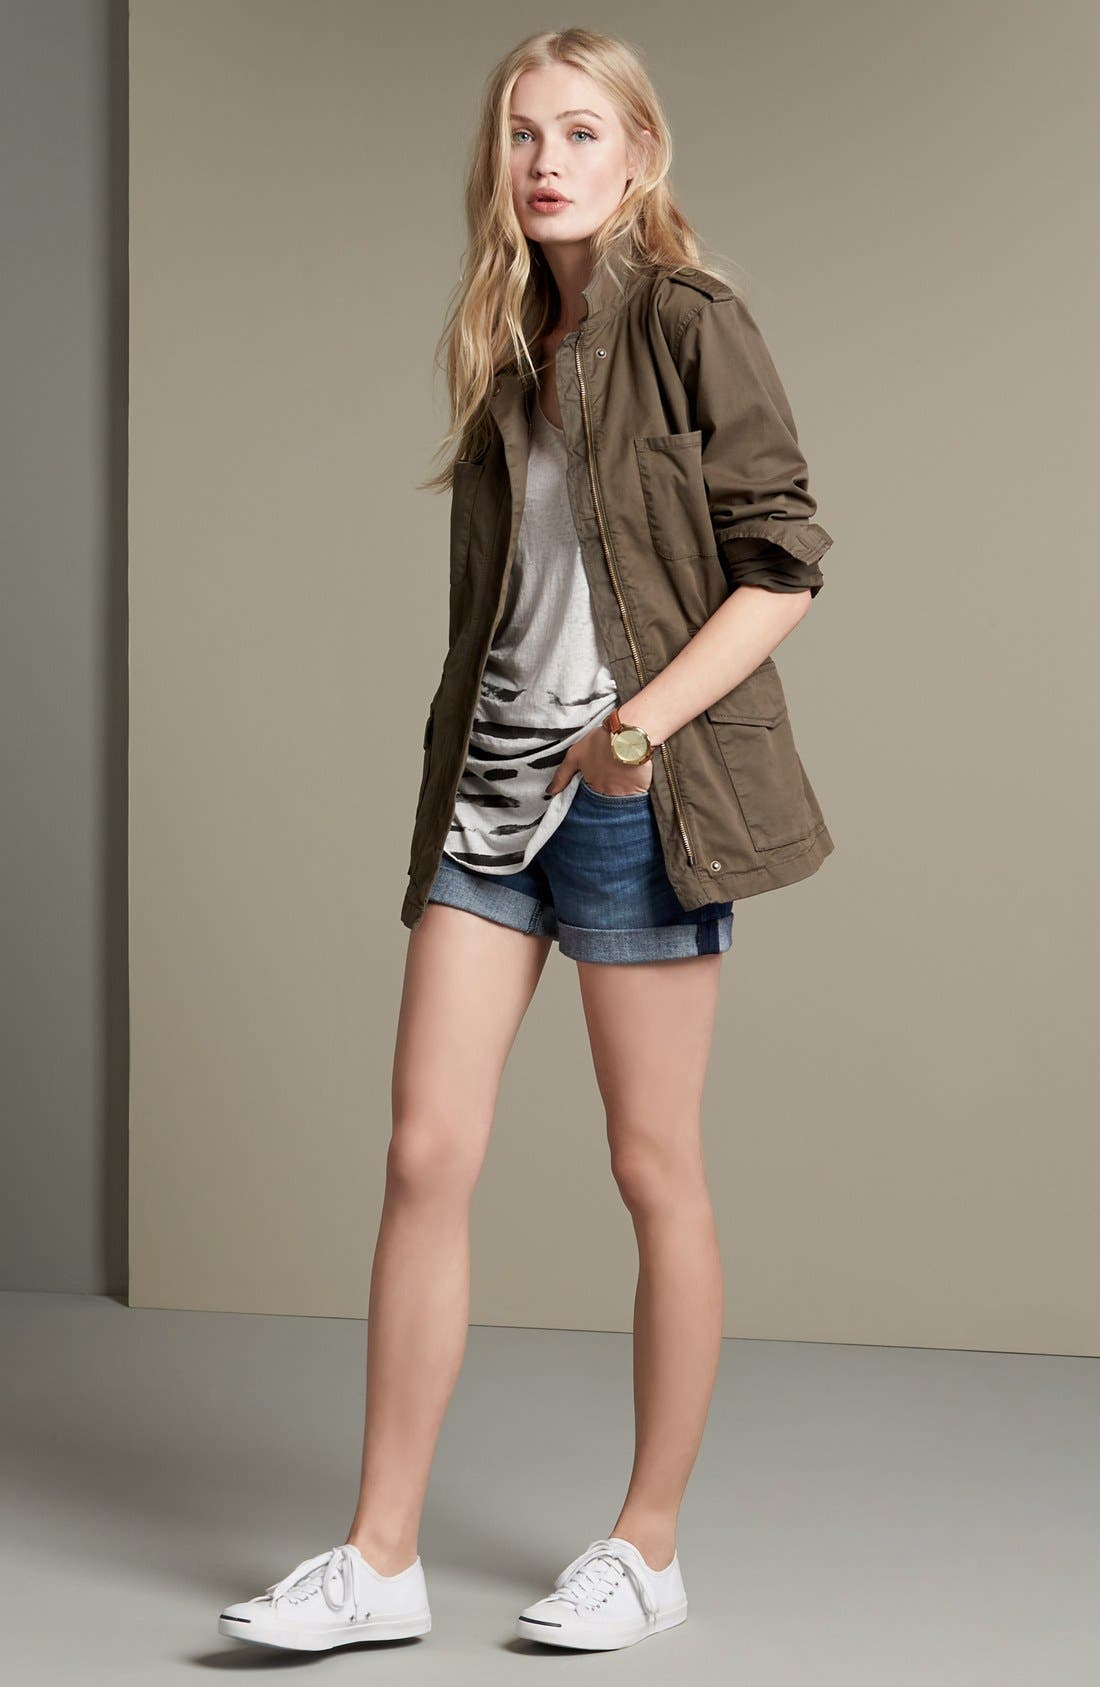 'Croxley' Cuffed Denim Shorts,                             Alternate thumbnail 29, color,